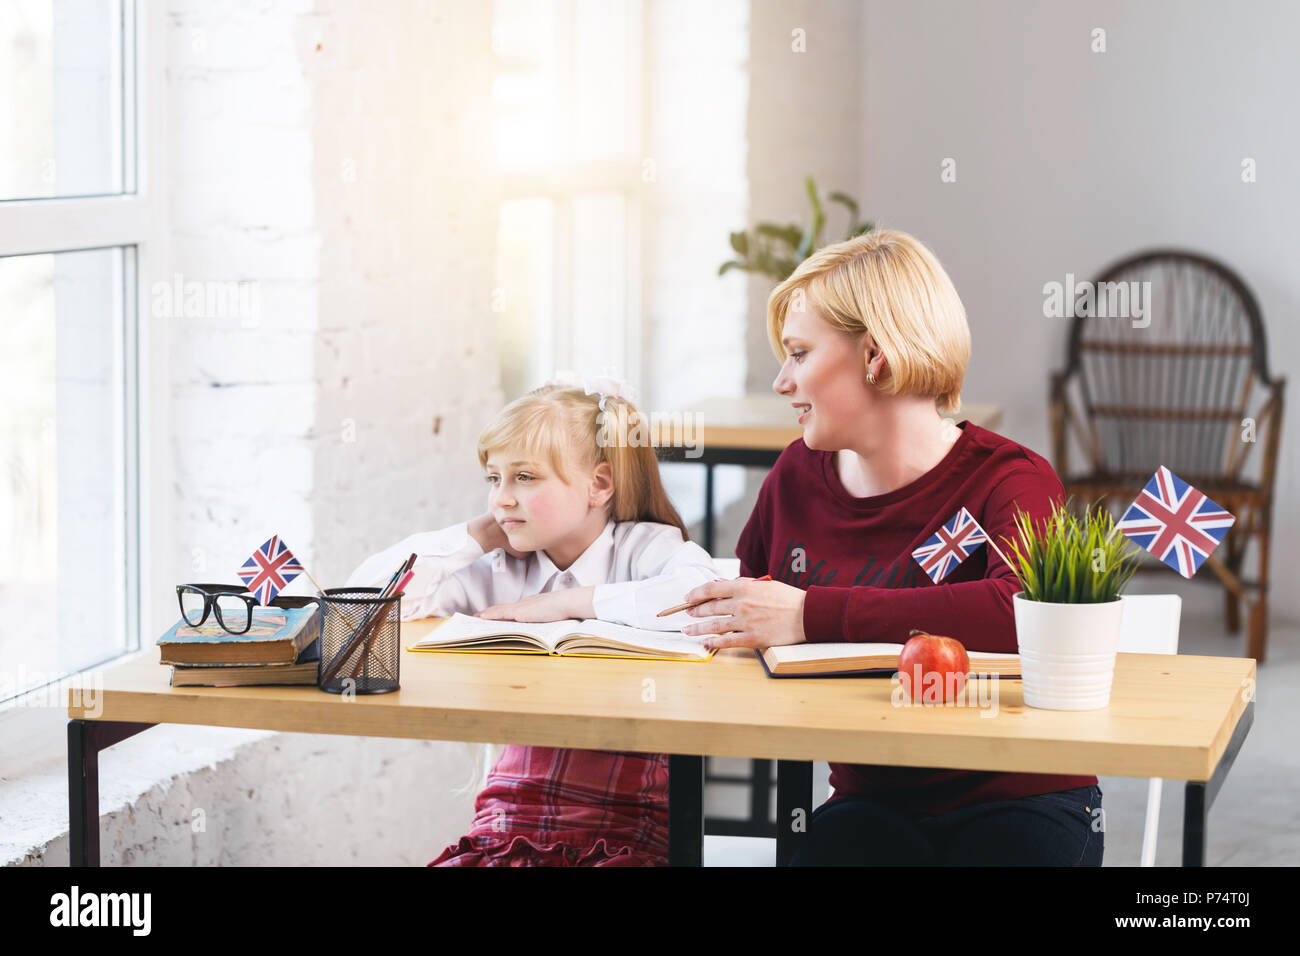 Female educator of English and tired girl, working table with books, british flag and apple, kids education language concept - Stock Image